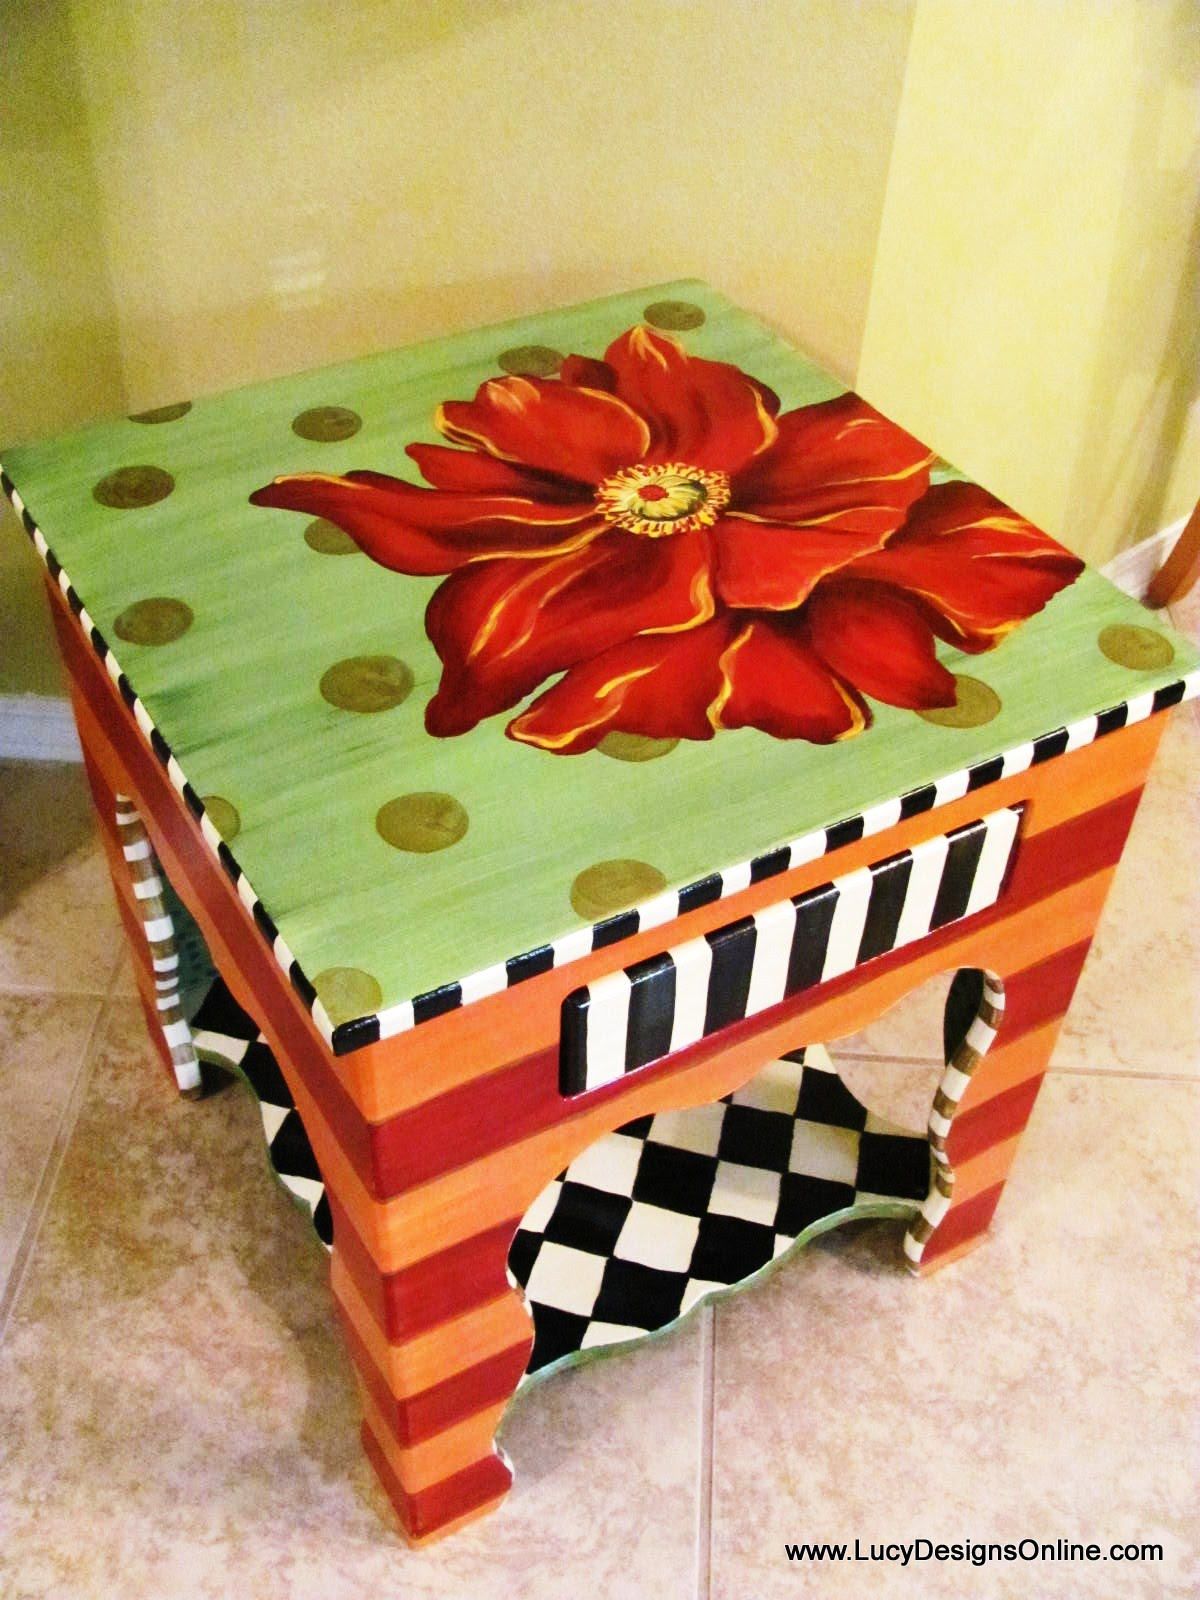 Table Painting Designs Painted Flower Table Lucy Designs